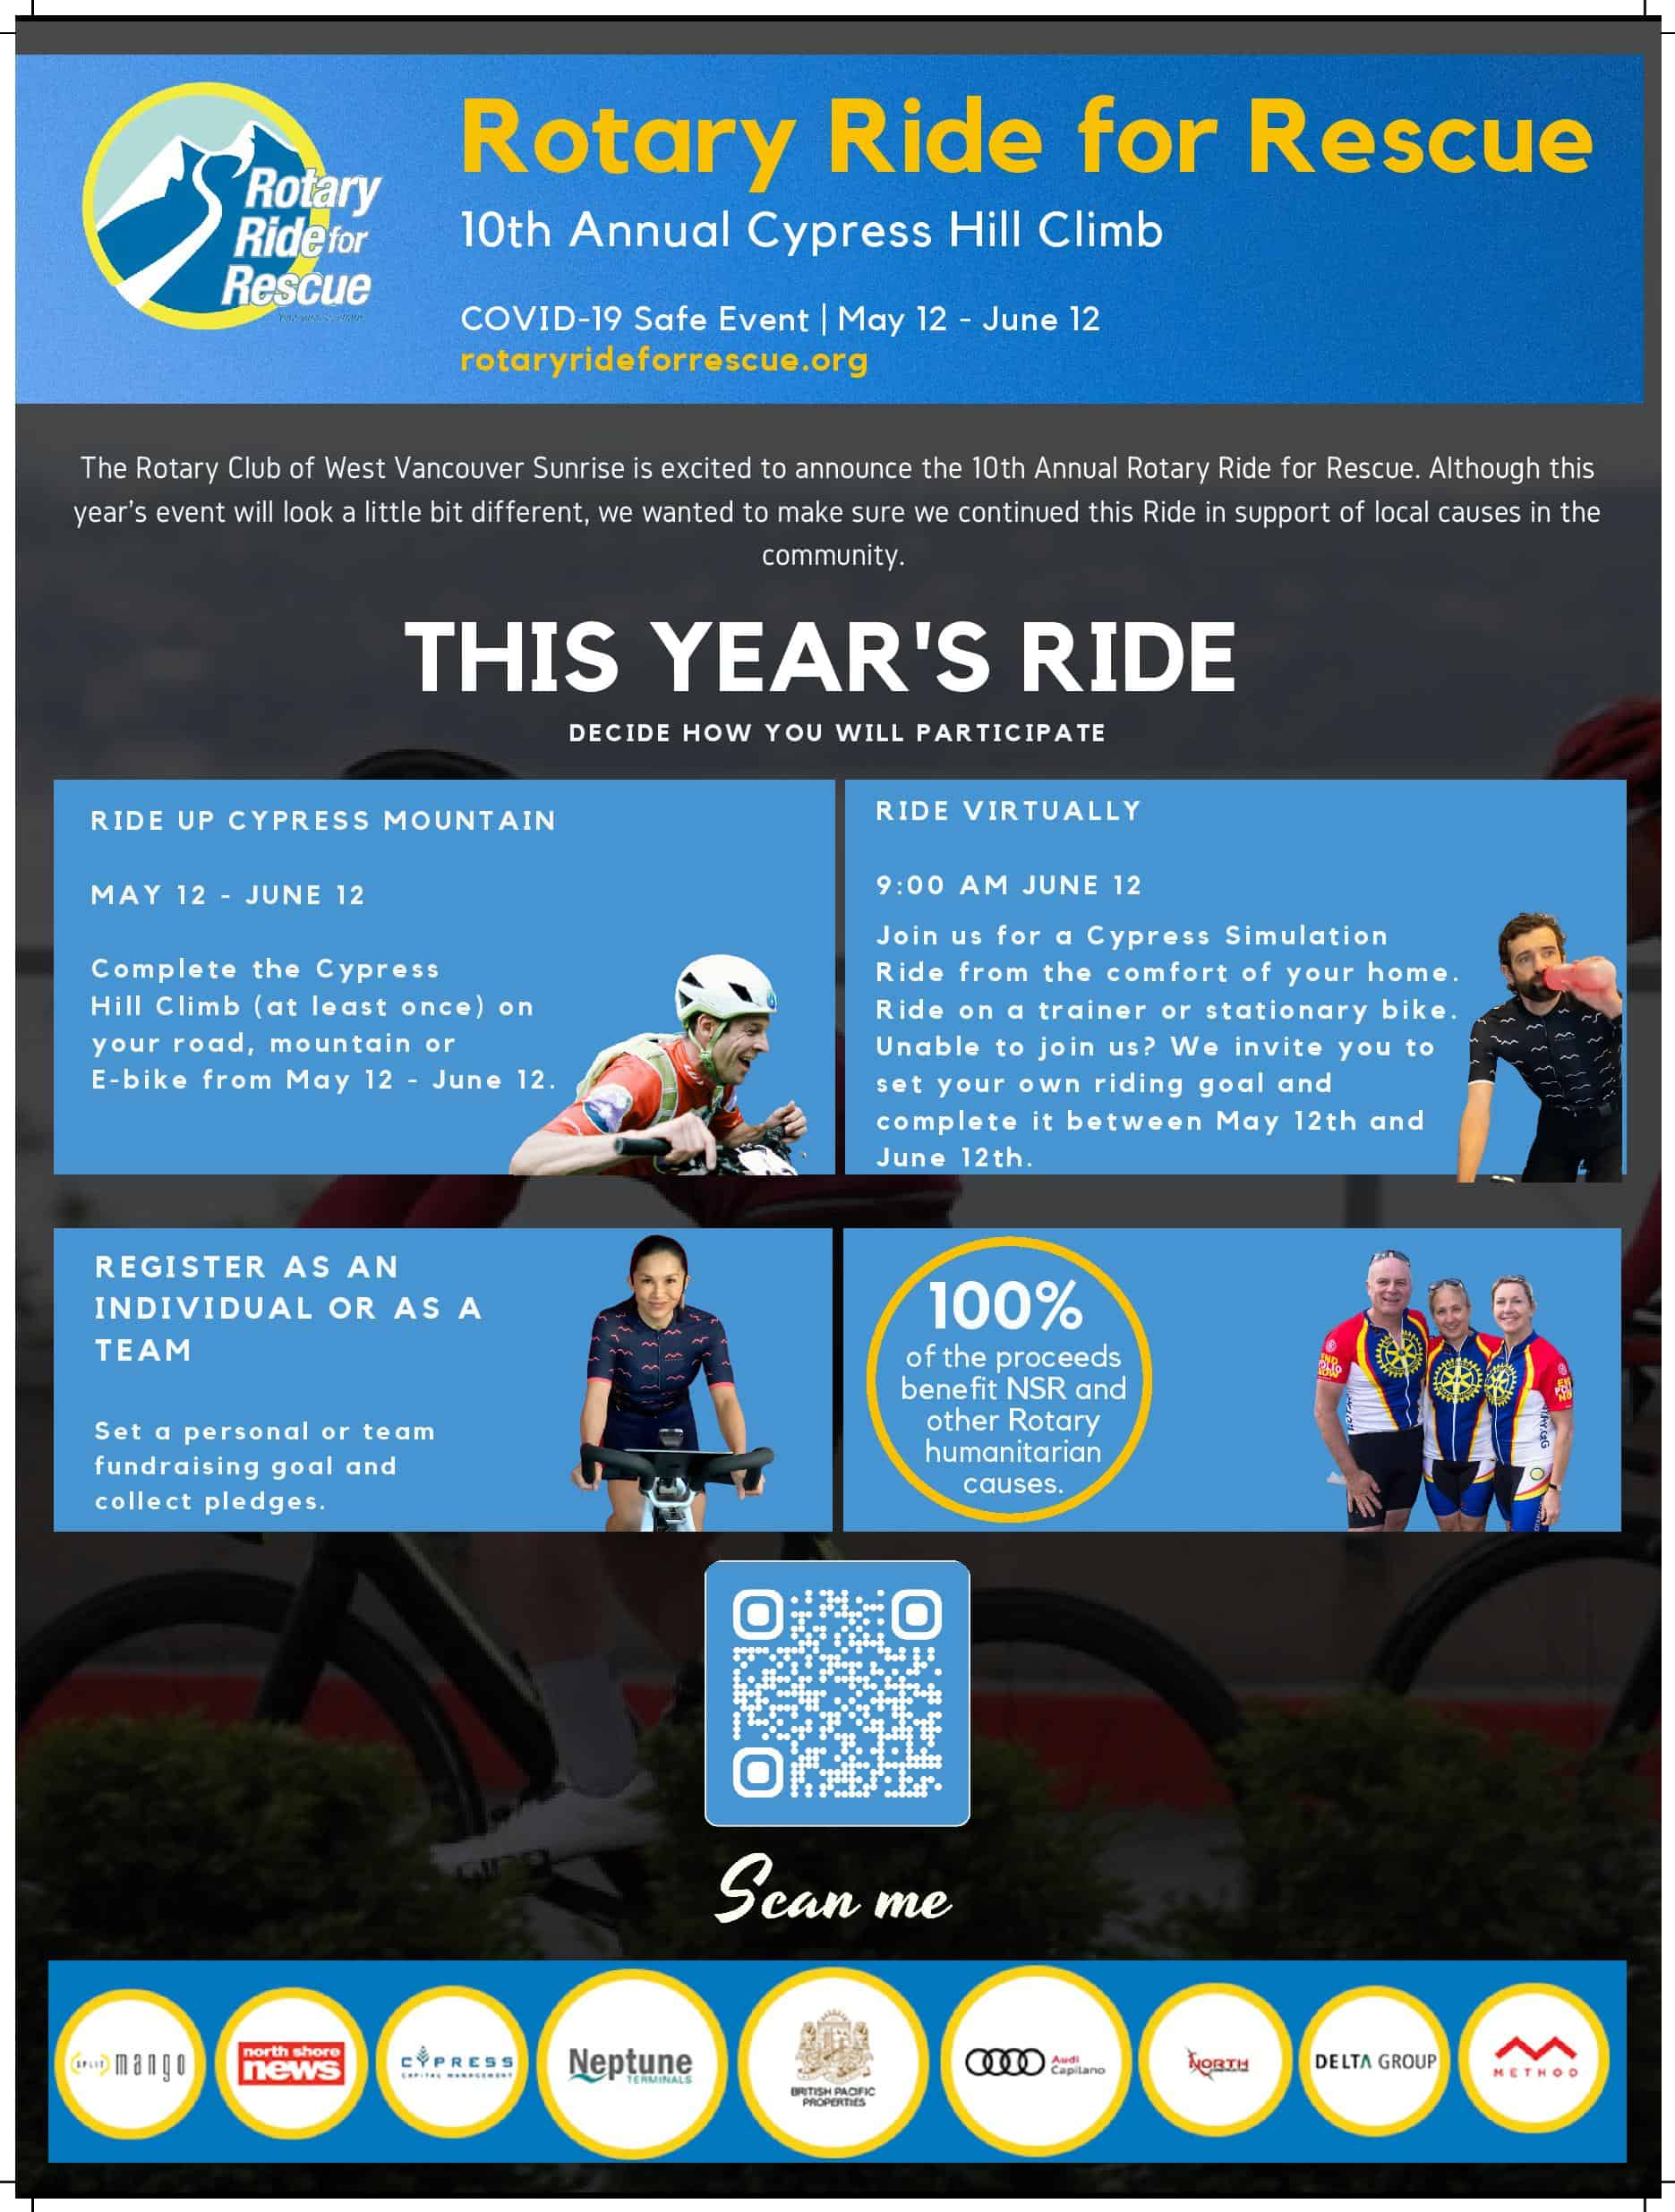 2021 Rotary Ride Poster image